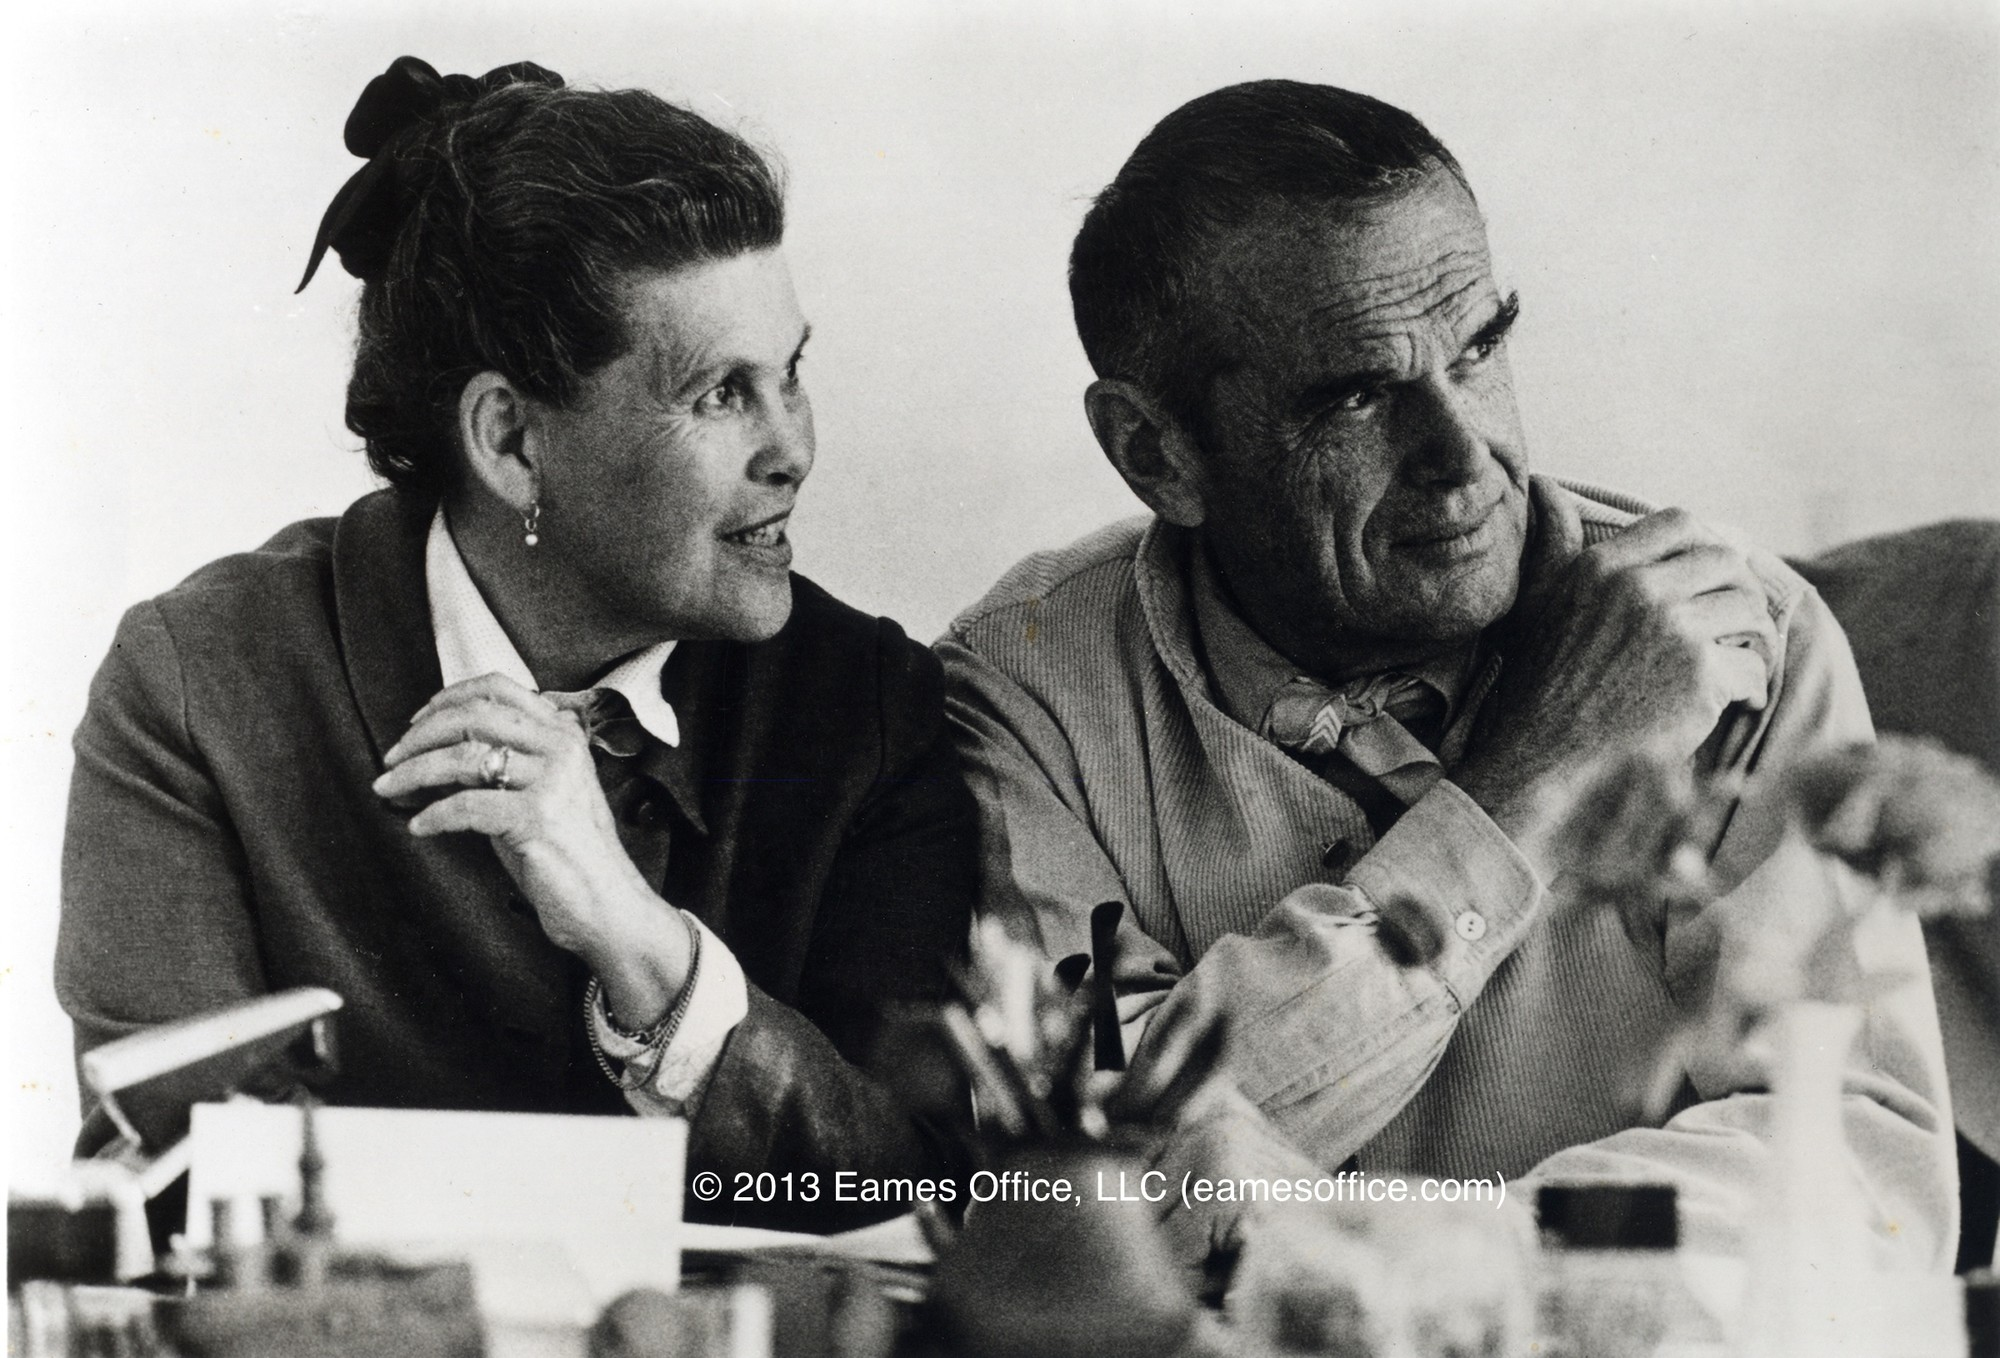 Ray and Charles Eames. Image © Eames Office